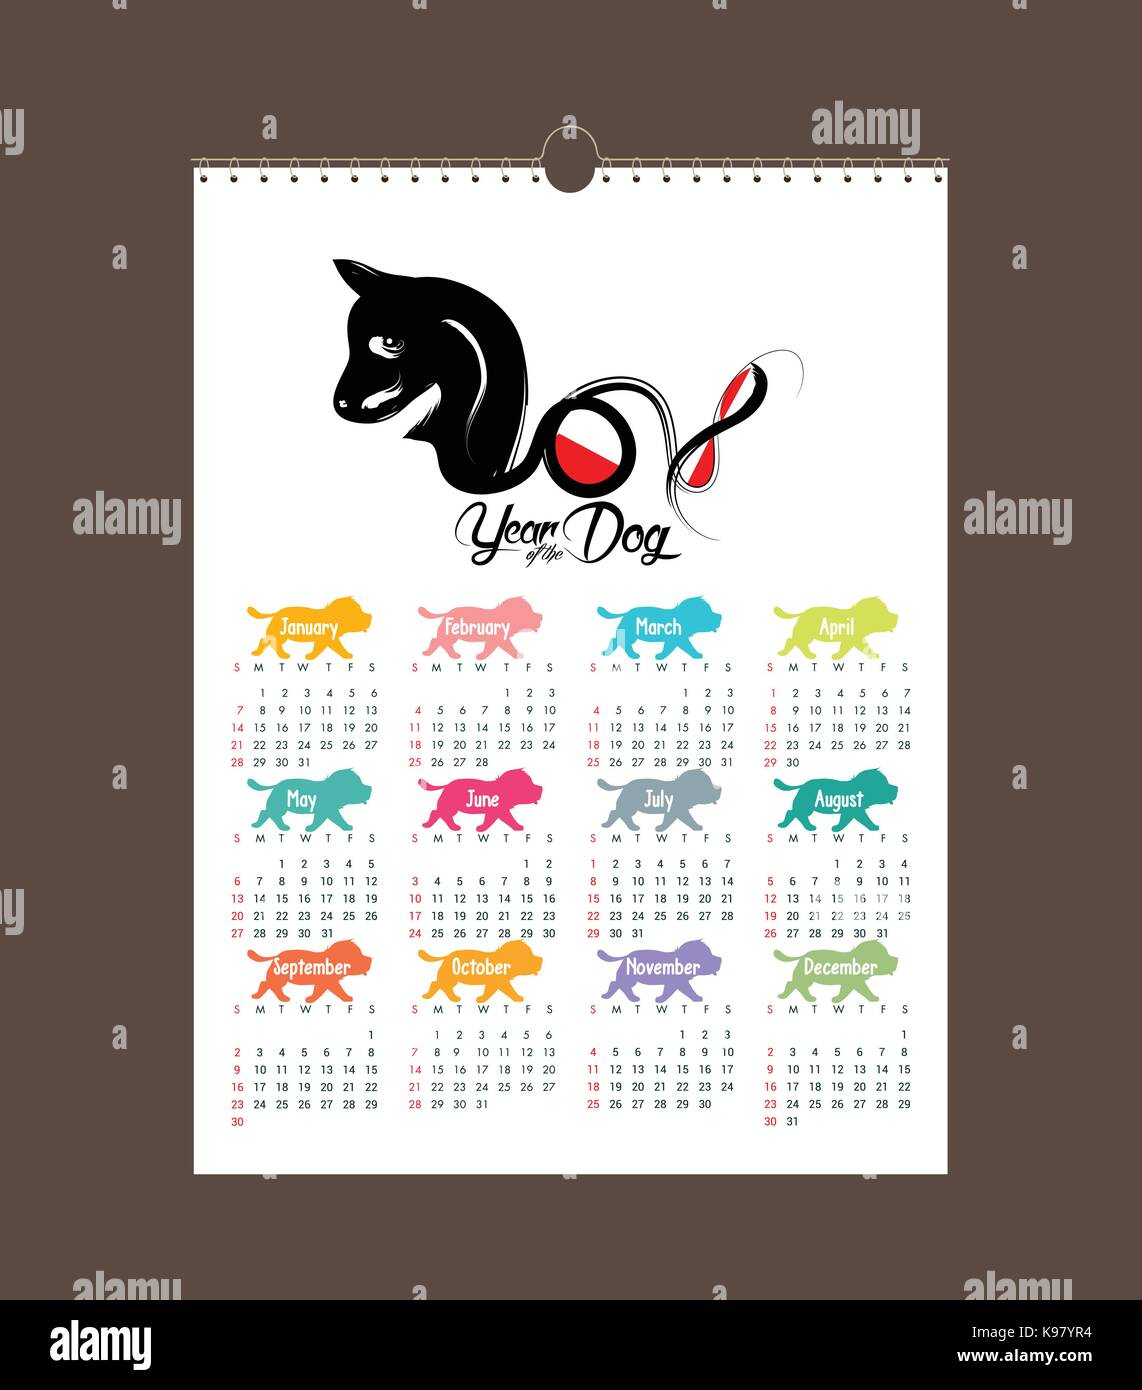 calendar 2018 design chinese new year the year of the dog zodiac monthly cards templates set of 12 month